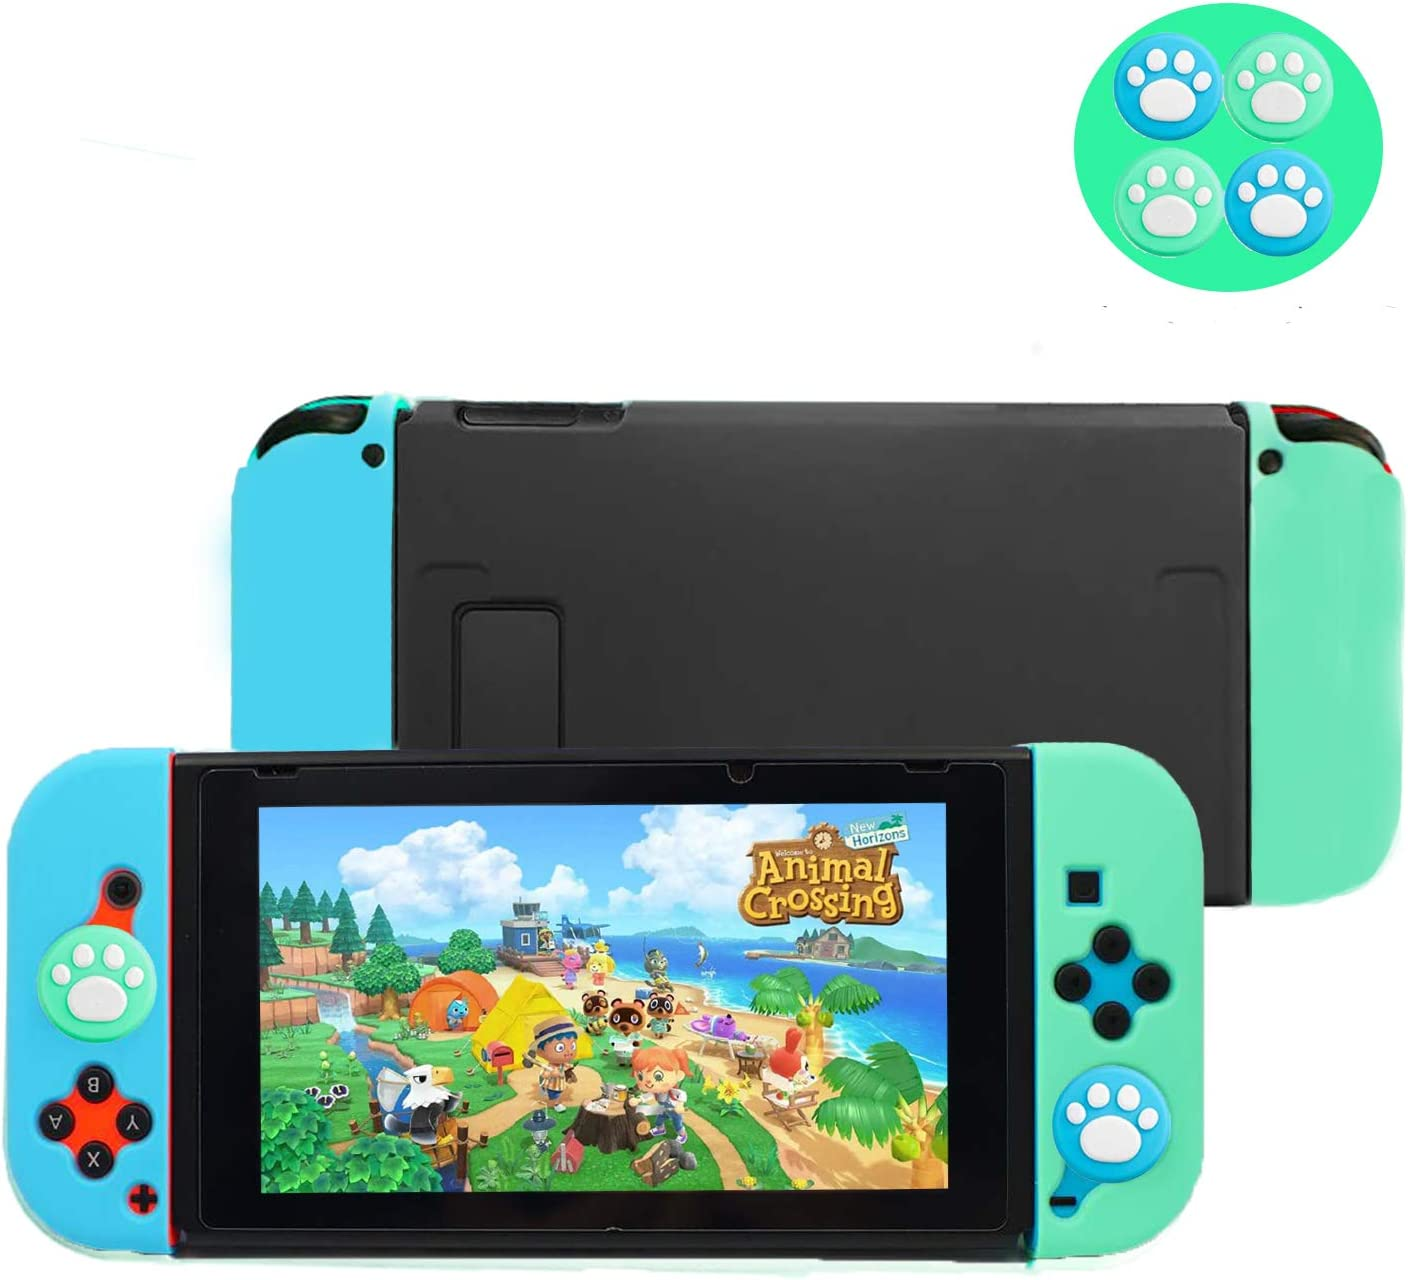 Dockable Case for Switch, Protective Case Cover with Shock-Absorption and Anti-Scratch Design, HD Clear Soft Touch Grip Cover, Free 4 Green&Blue Thumb Caps (for Animal-Crossing Theme)